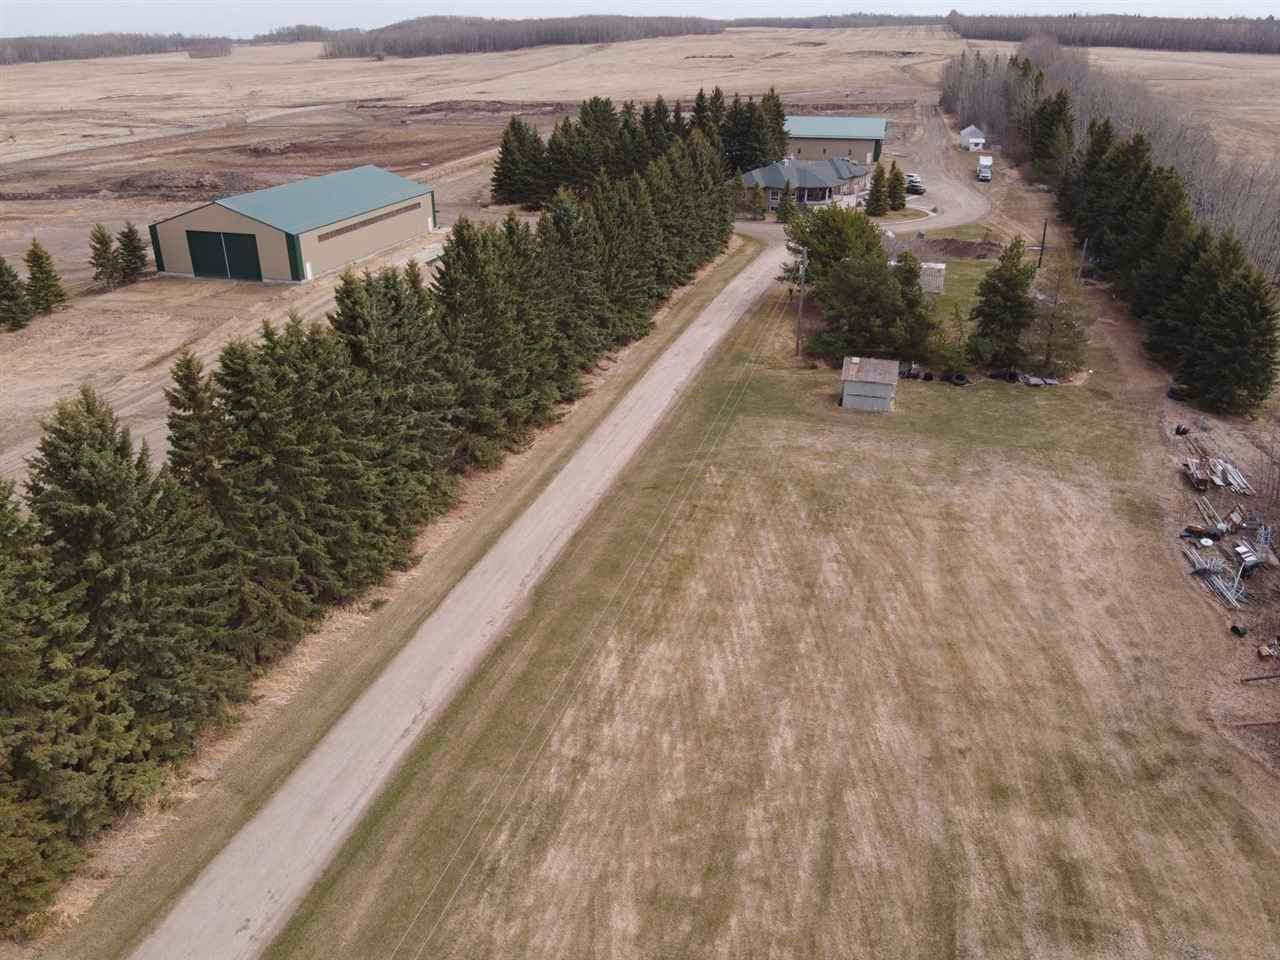 Main Photo: 47443 778 Highway: Rural Leduc County House for sale : MLS®# E4241731